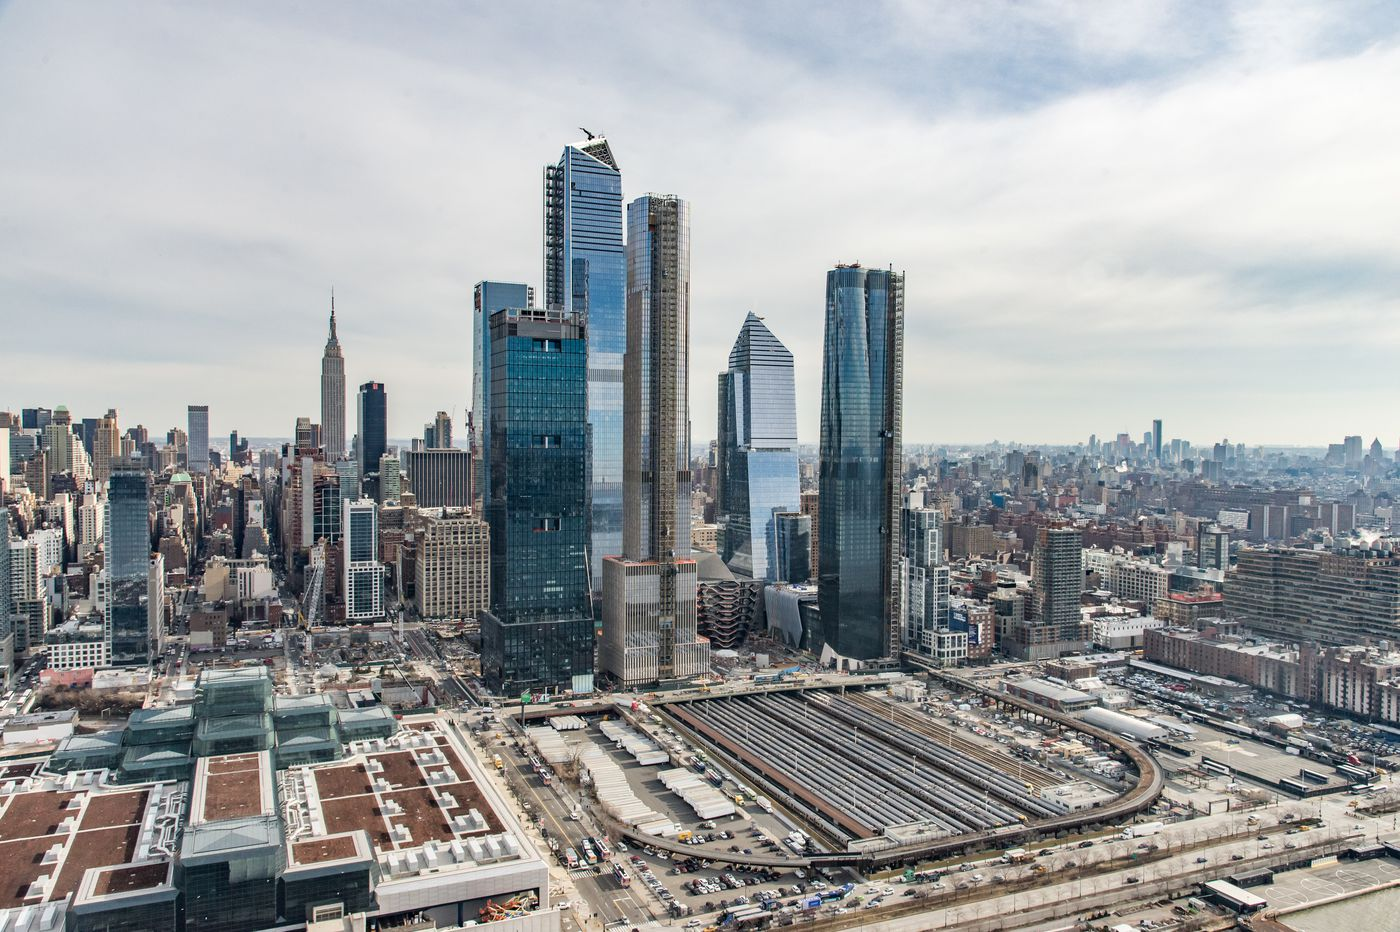 As construction starts at Philly's Schuylkill Yards, New York's Hudson Yards serves as a cautionary tale | Inga Saffron